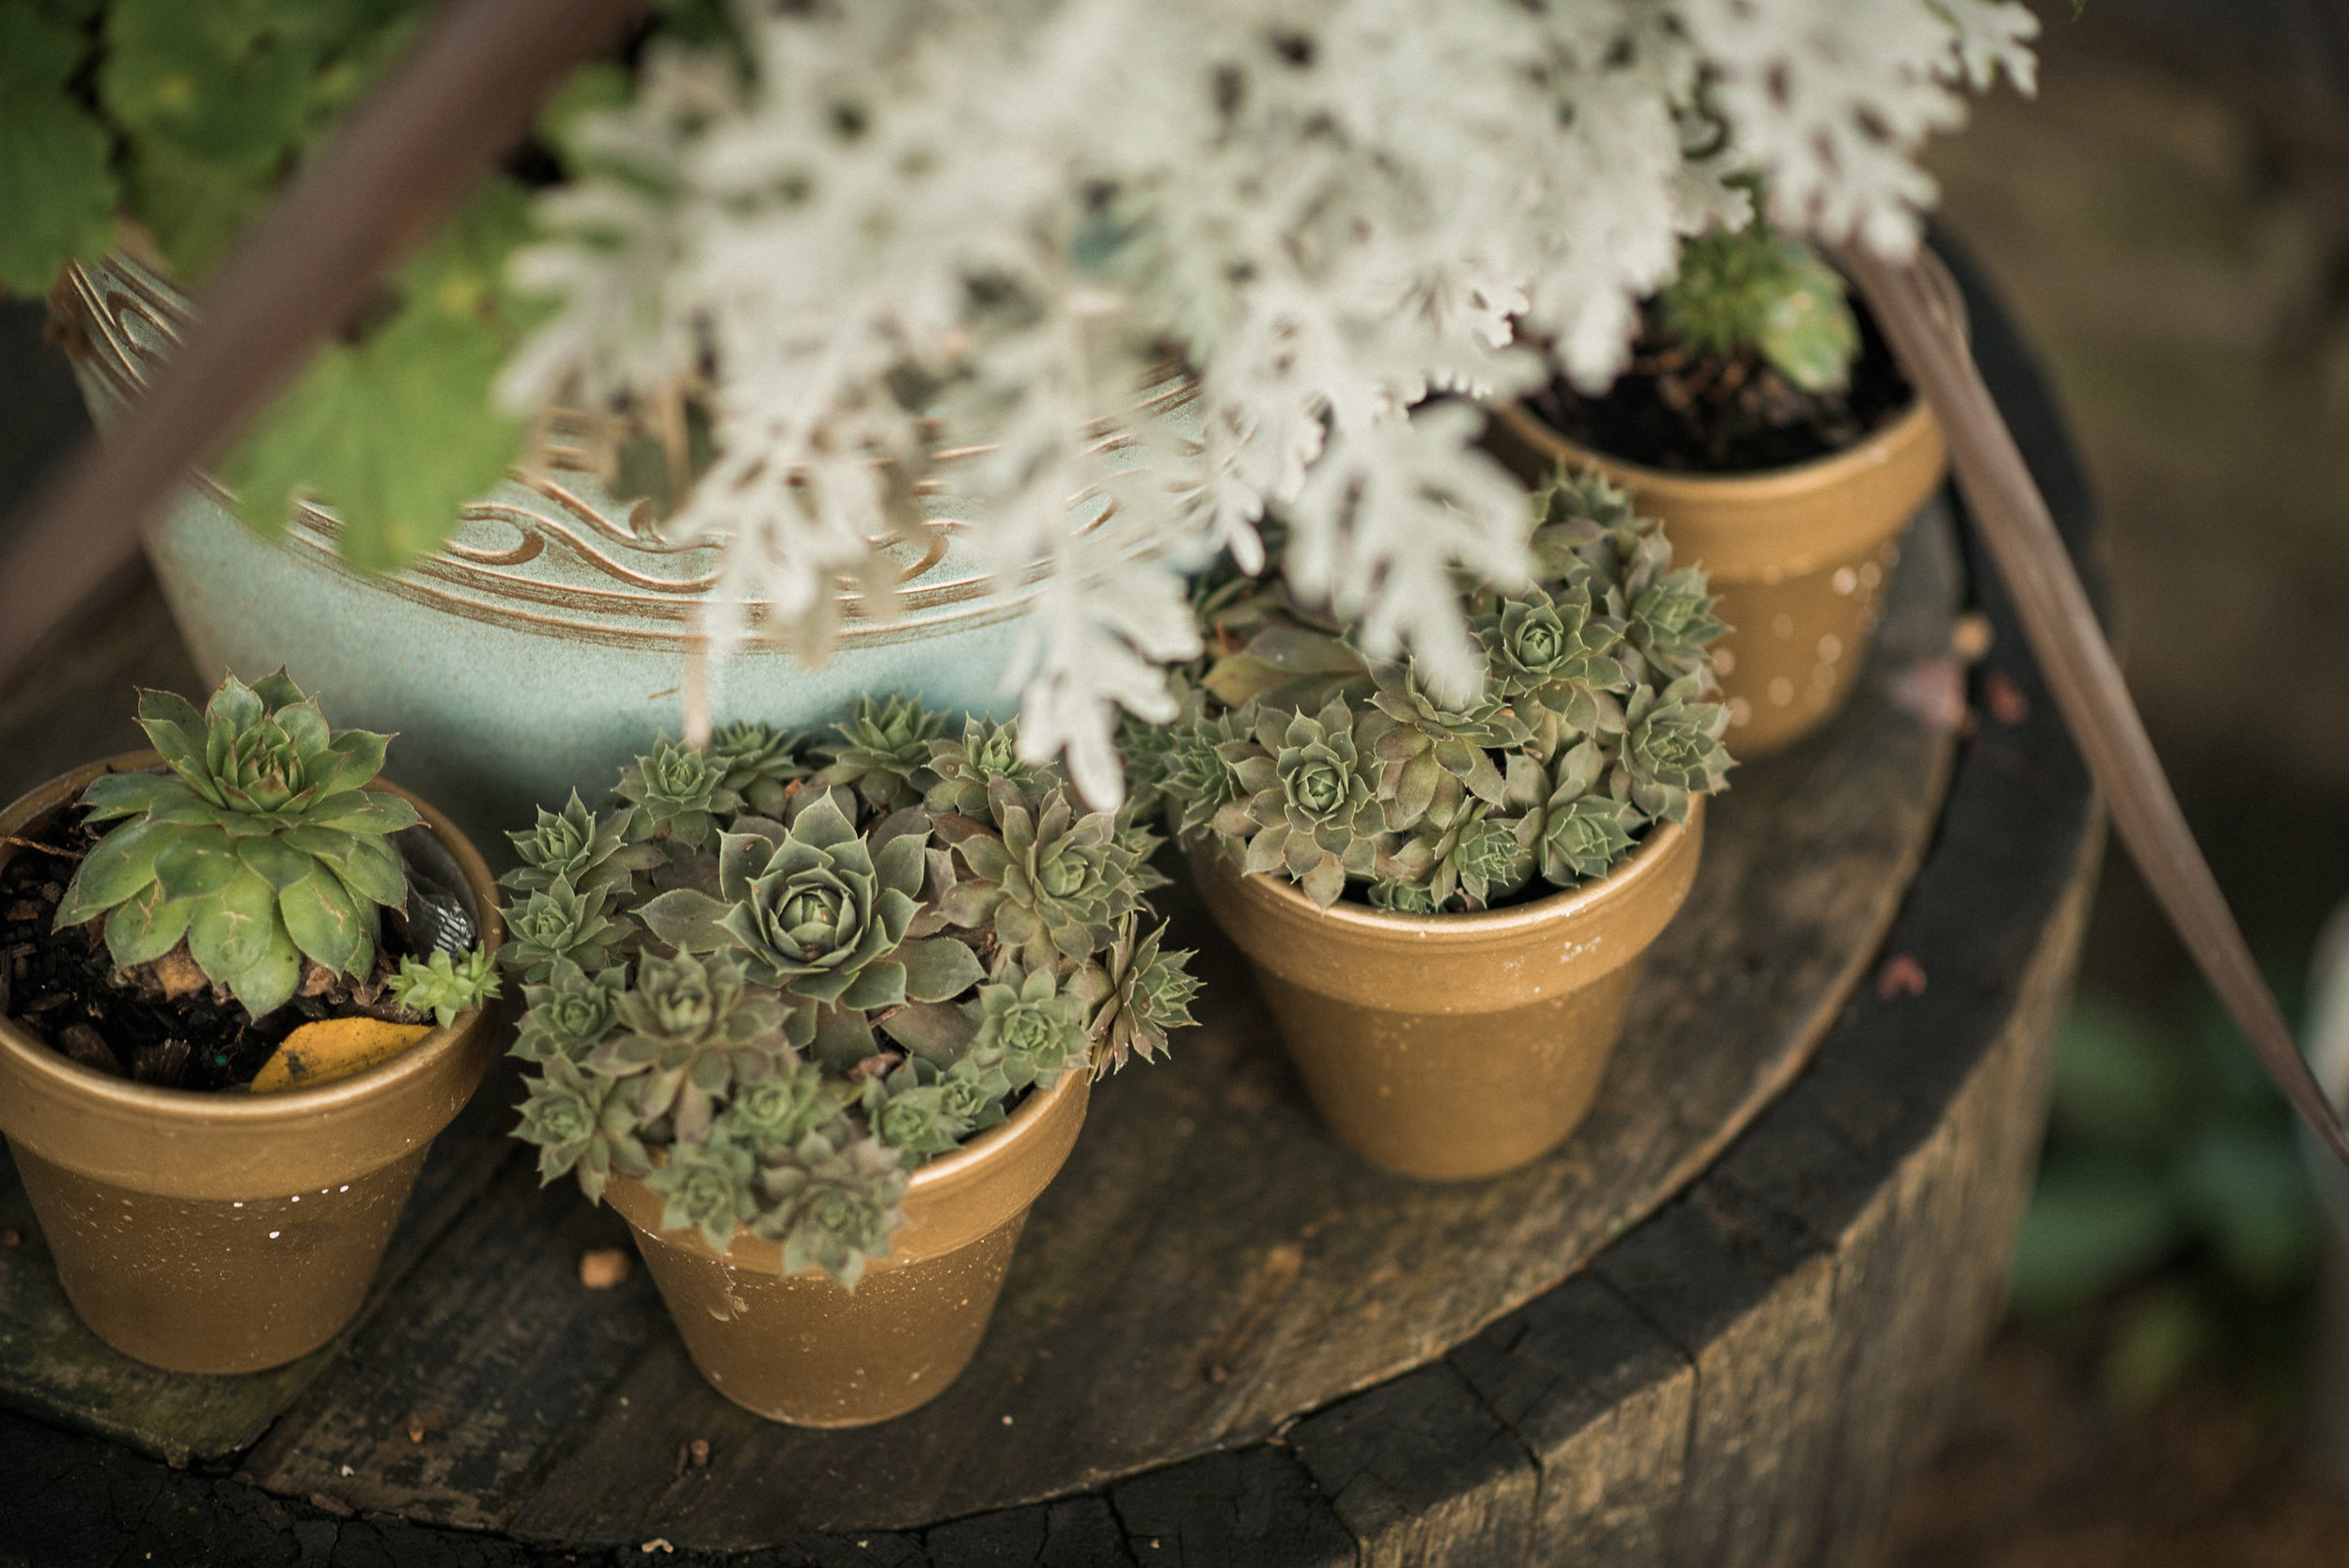 Ferns and succulents in pots at wedding